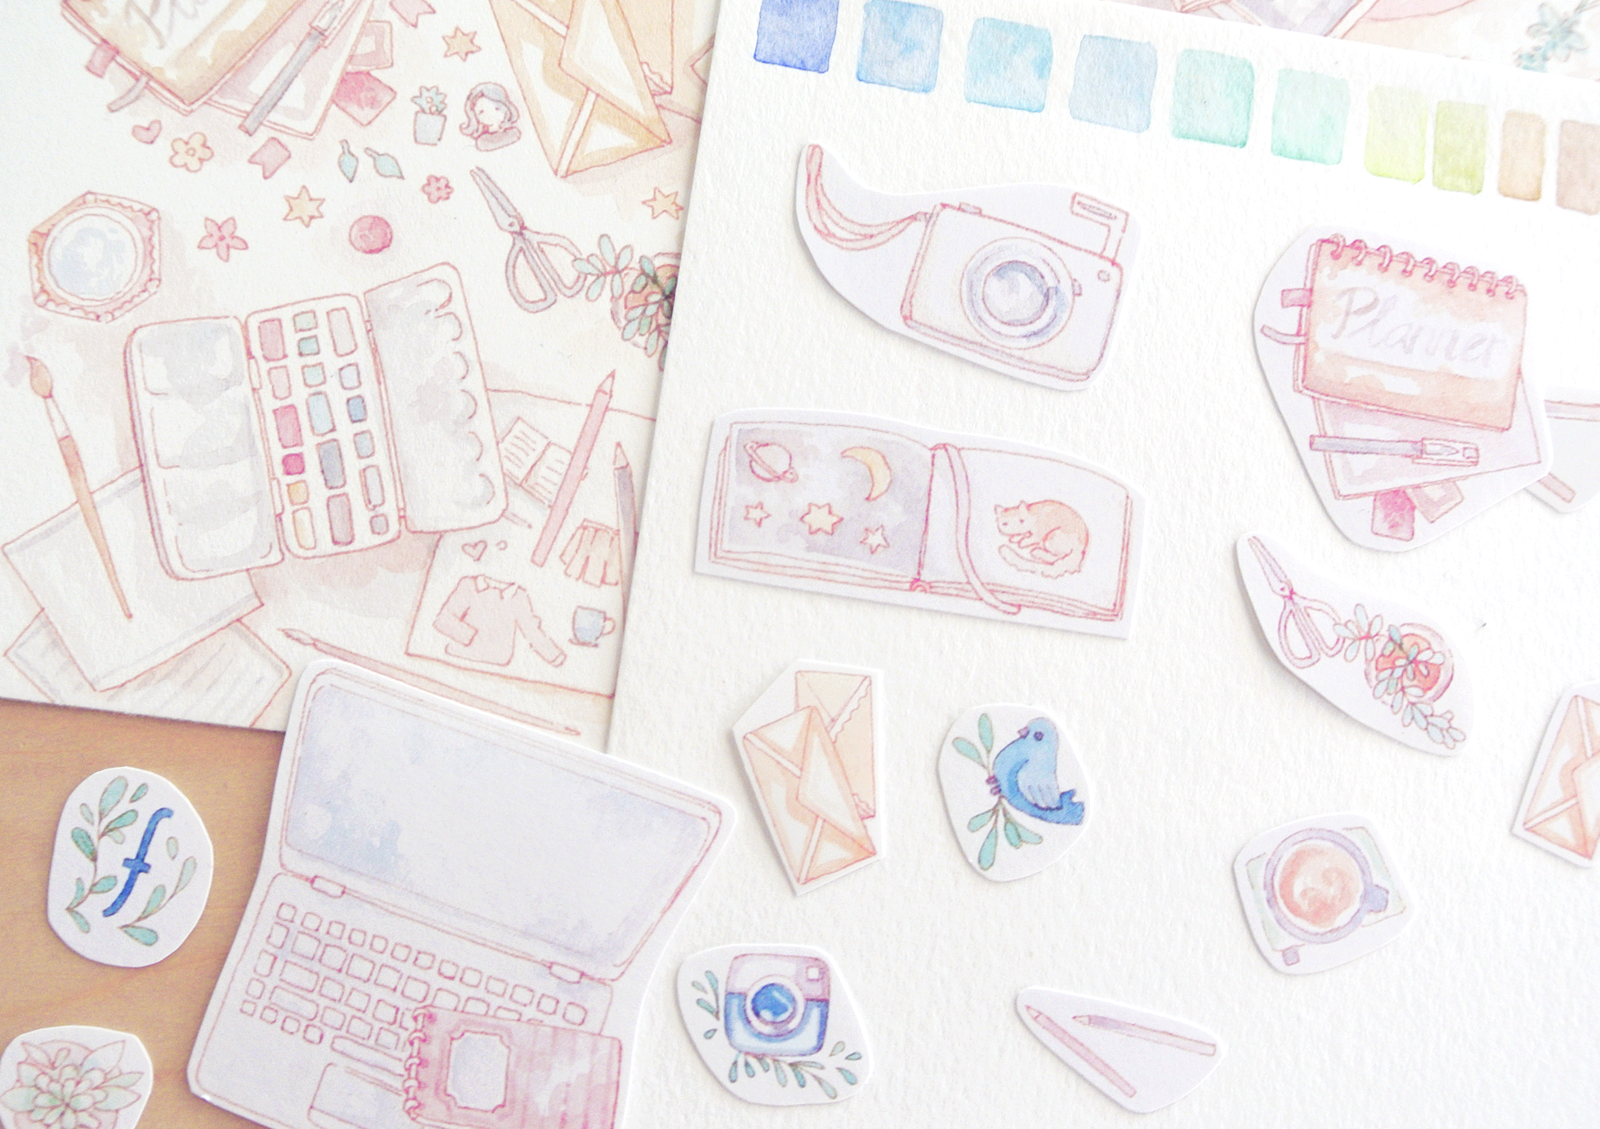 Creative Business, Etsy shop and blogging recap for May - evydraws.